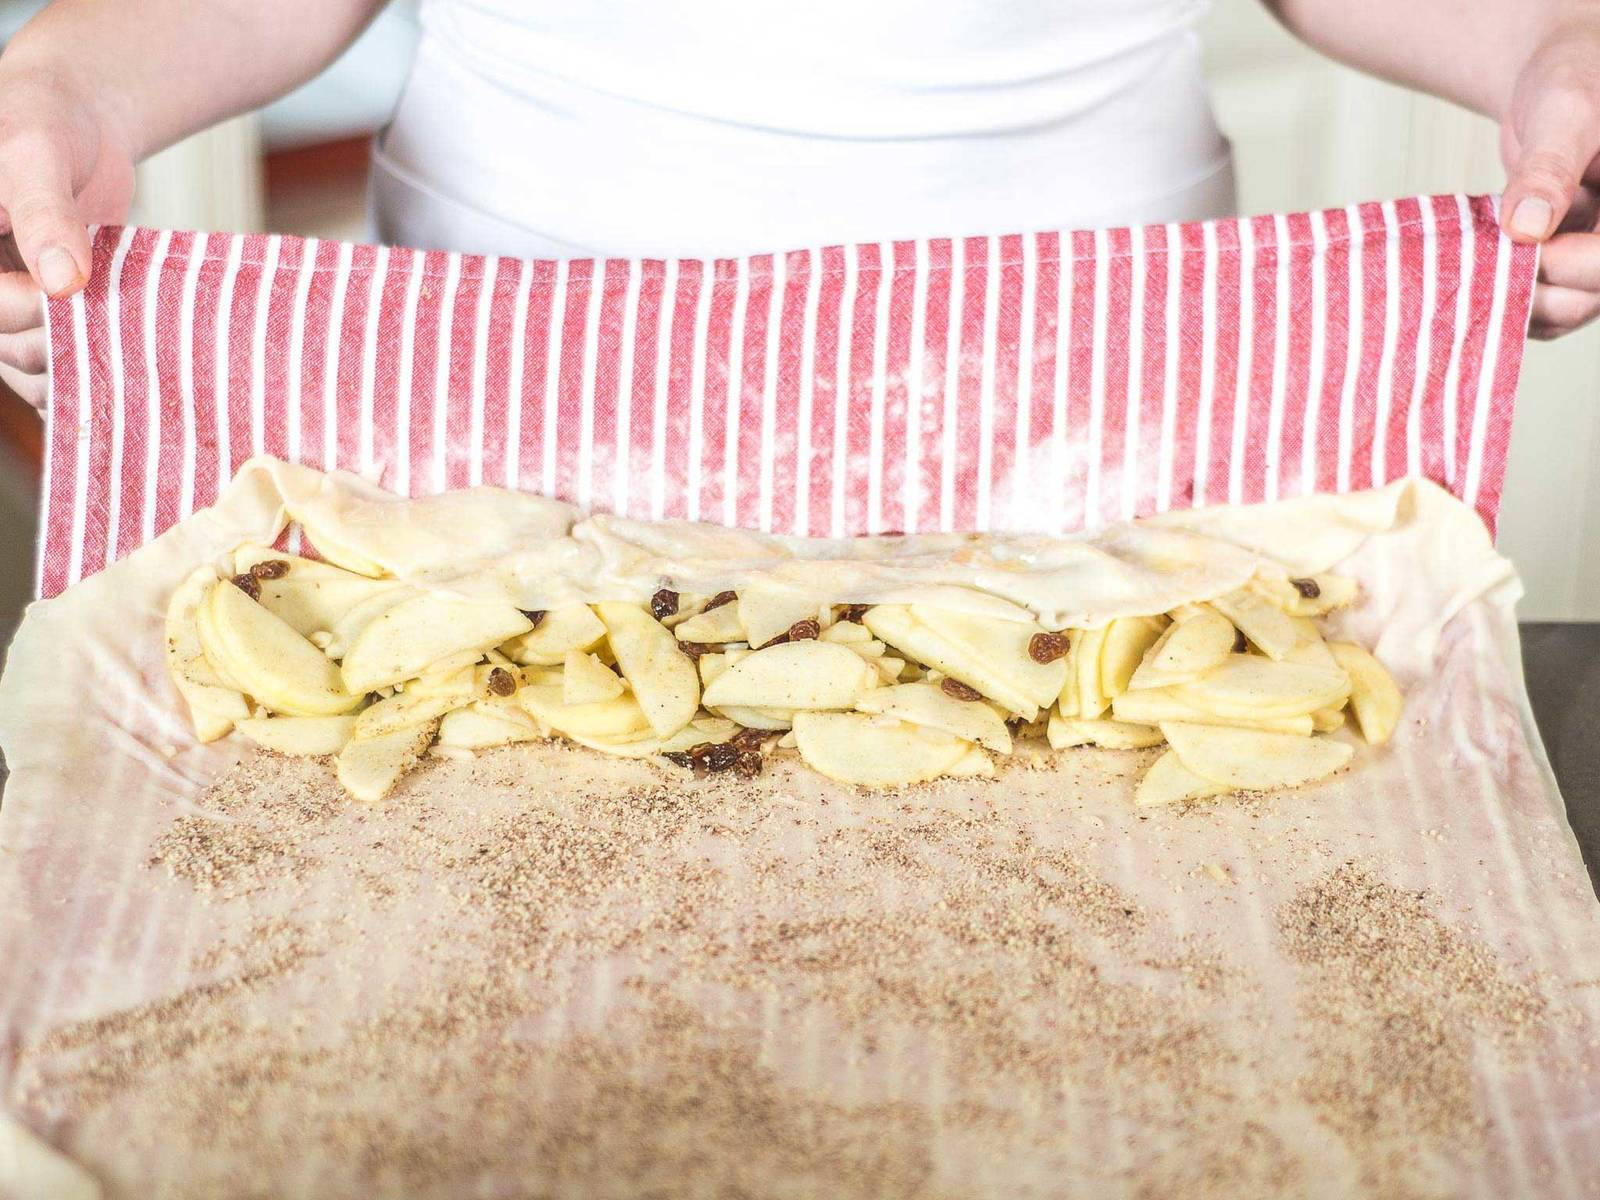 Using the kitchen towel, carefully fold the dough around the apple mixture.